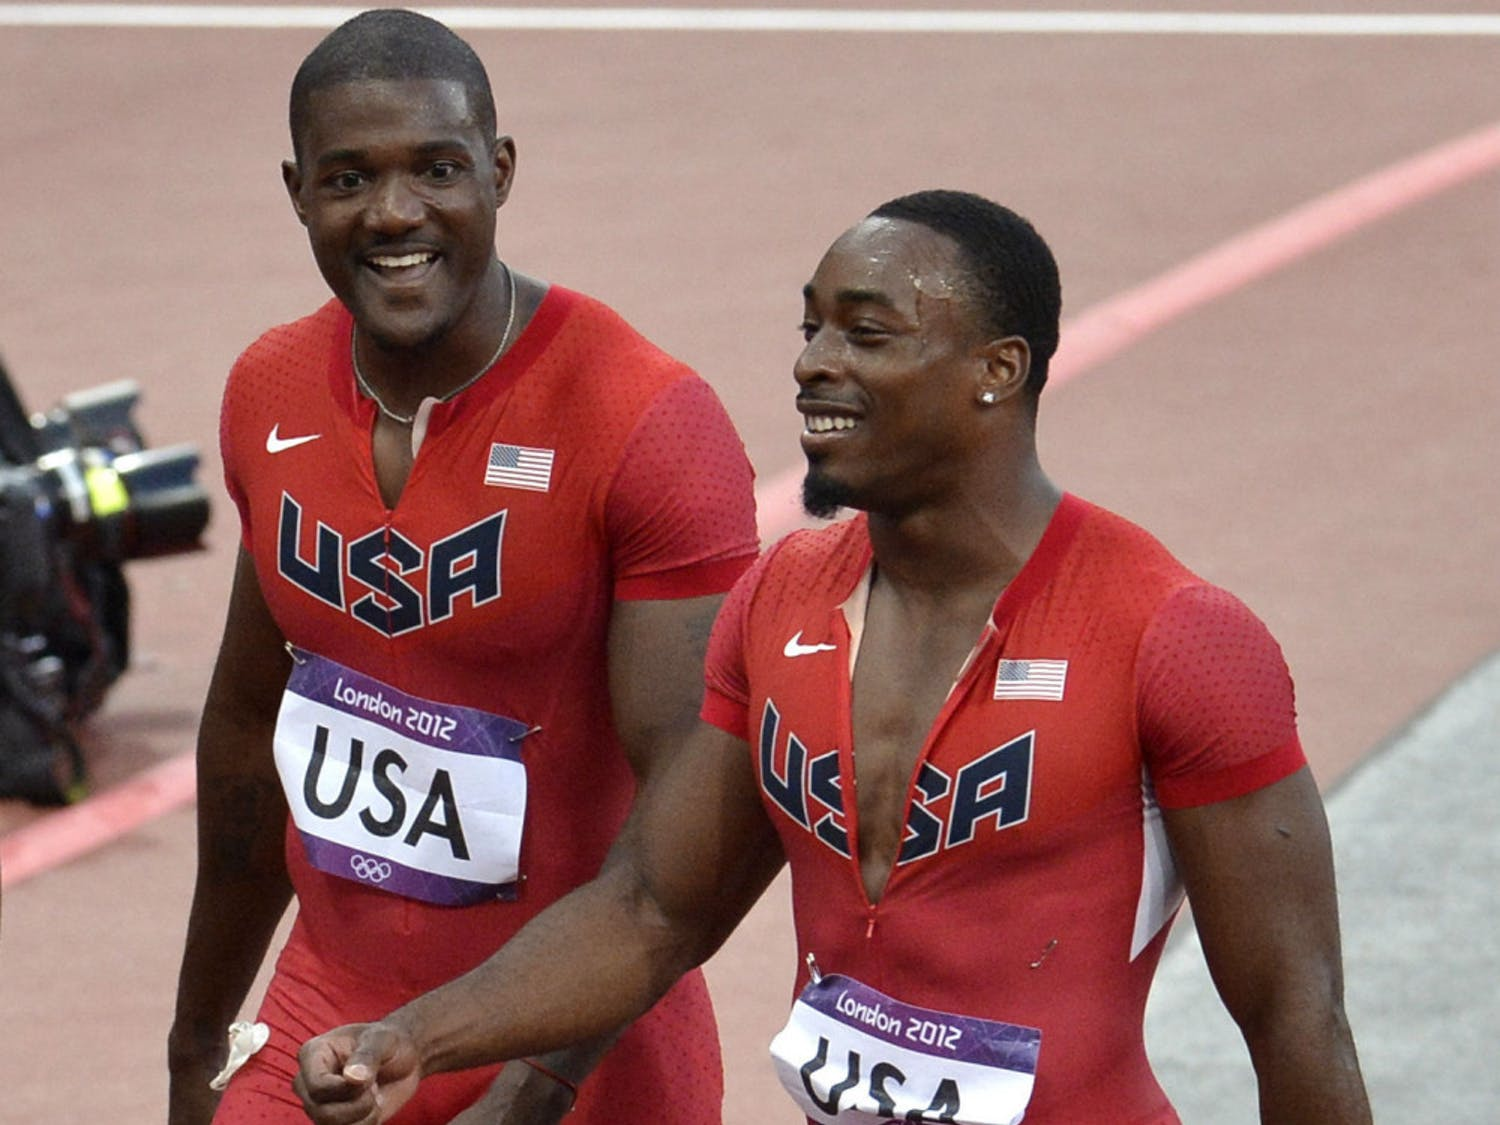 Jeff Demps (right) smiles during the 2012 Summer Olympics in London, England.